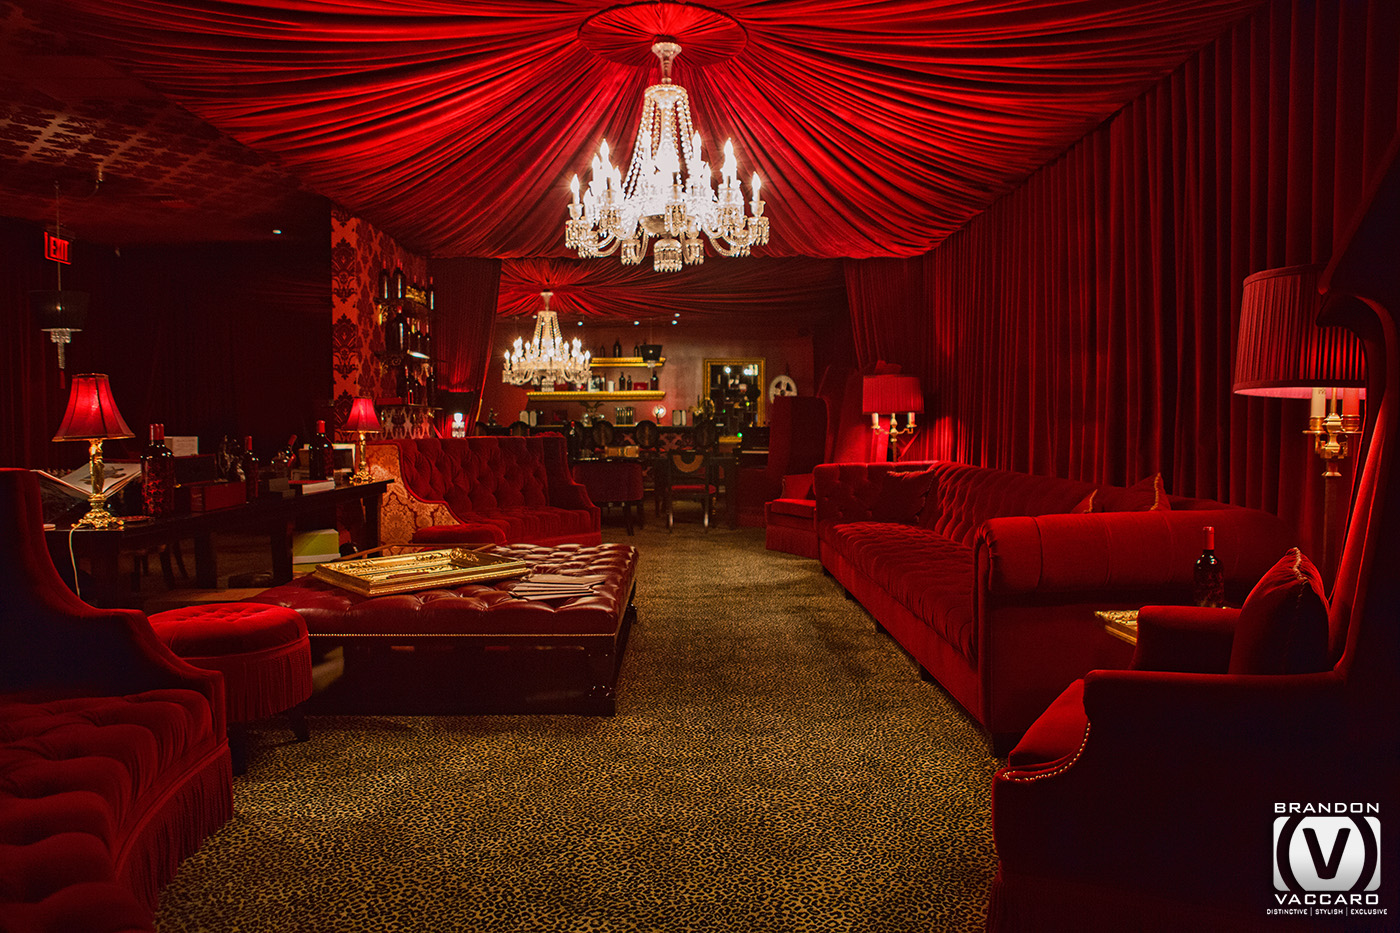 architecture-raymond-winery-red-room-napa-valley-exclusive copy.jpg